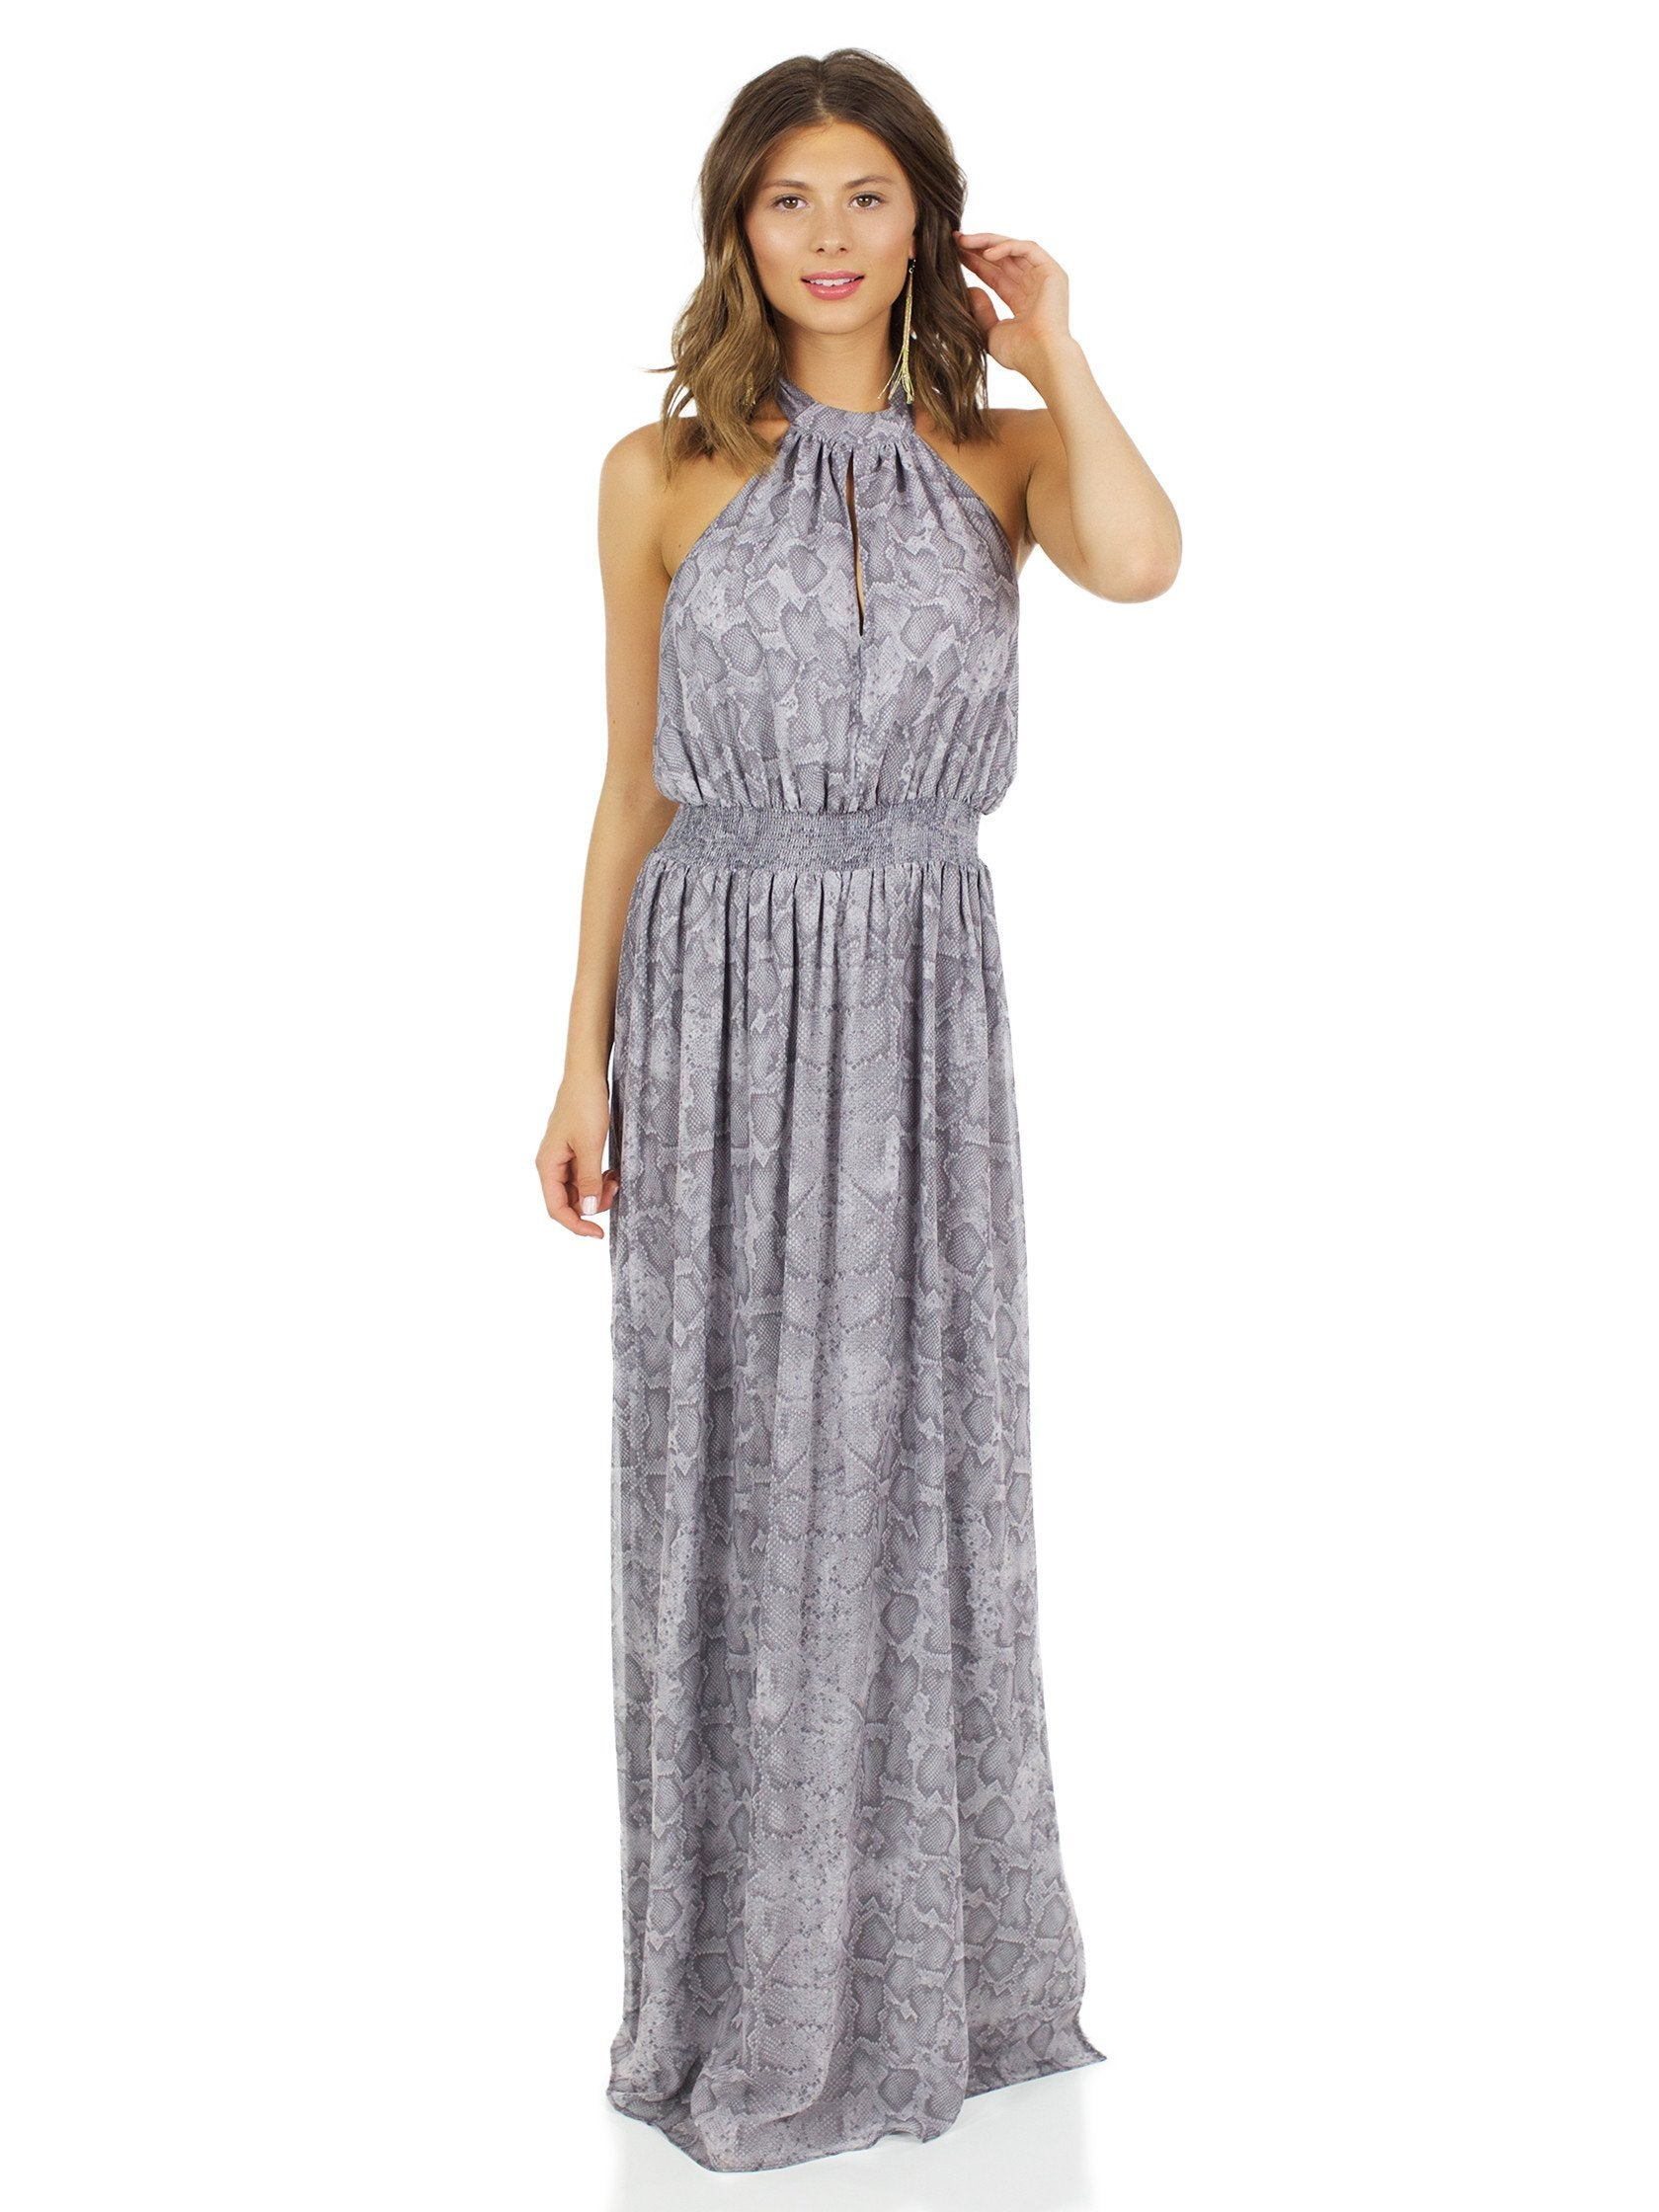 Girl outfit in a dress rental from The Jetset Diaries called Medusa Maxi Dress